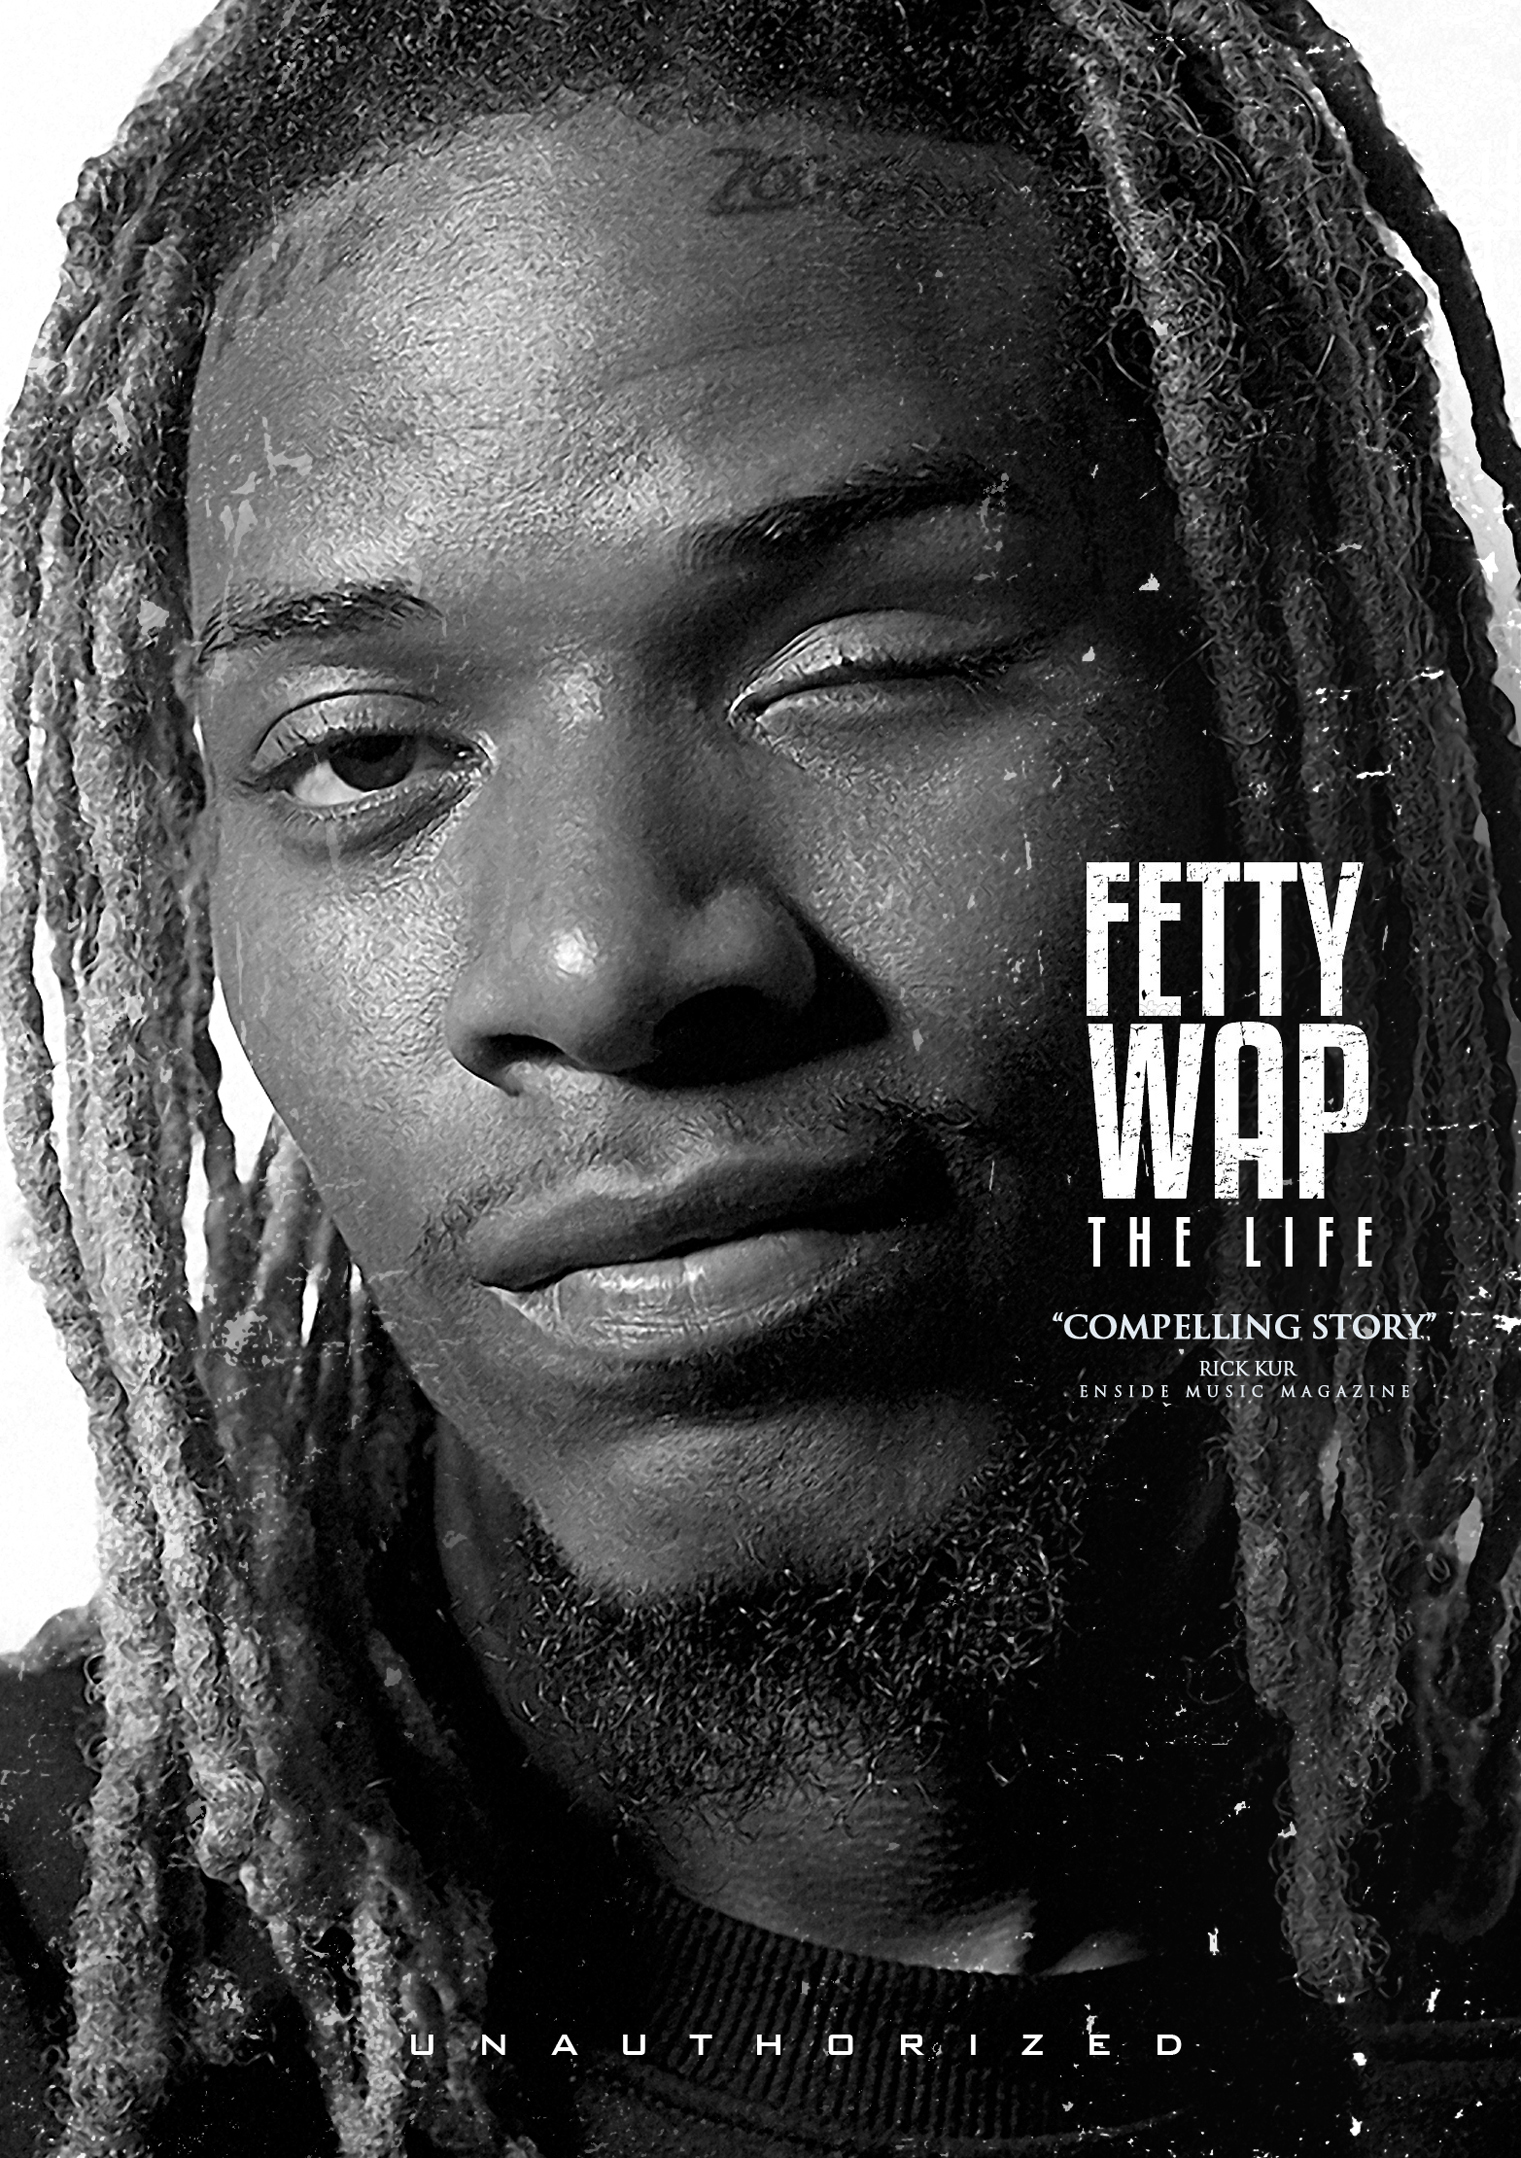 Fetty Wap: The Life